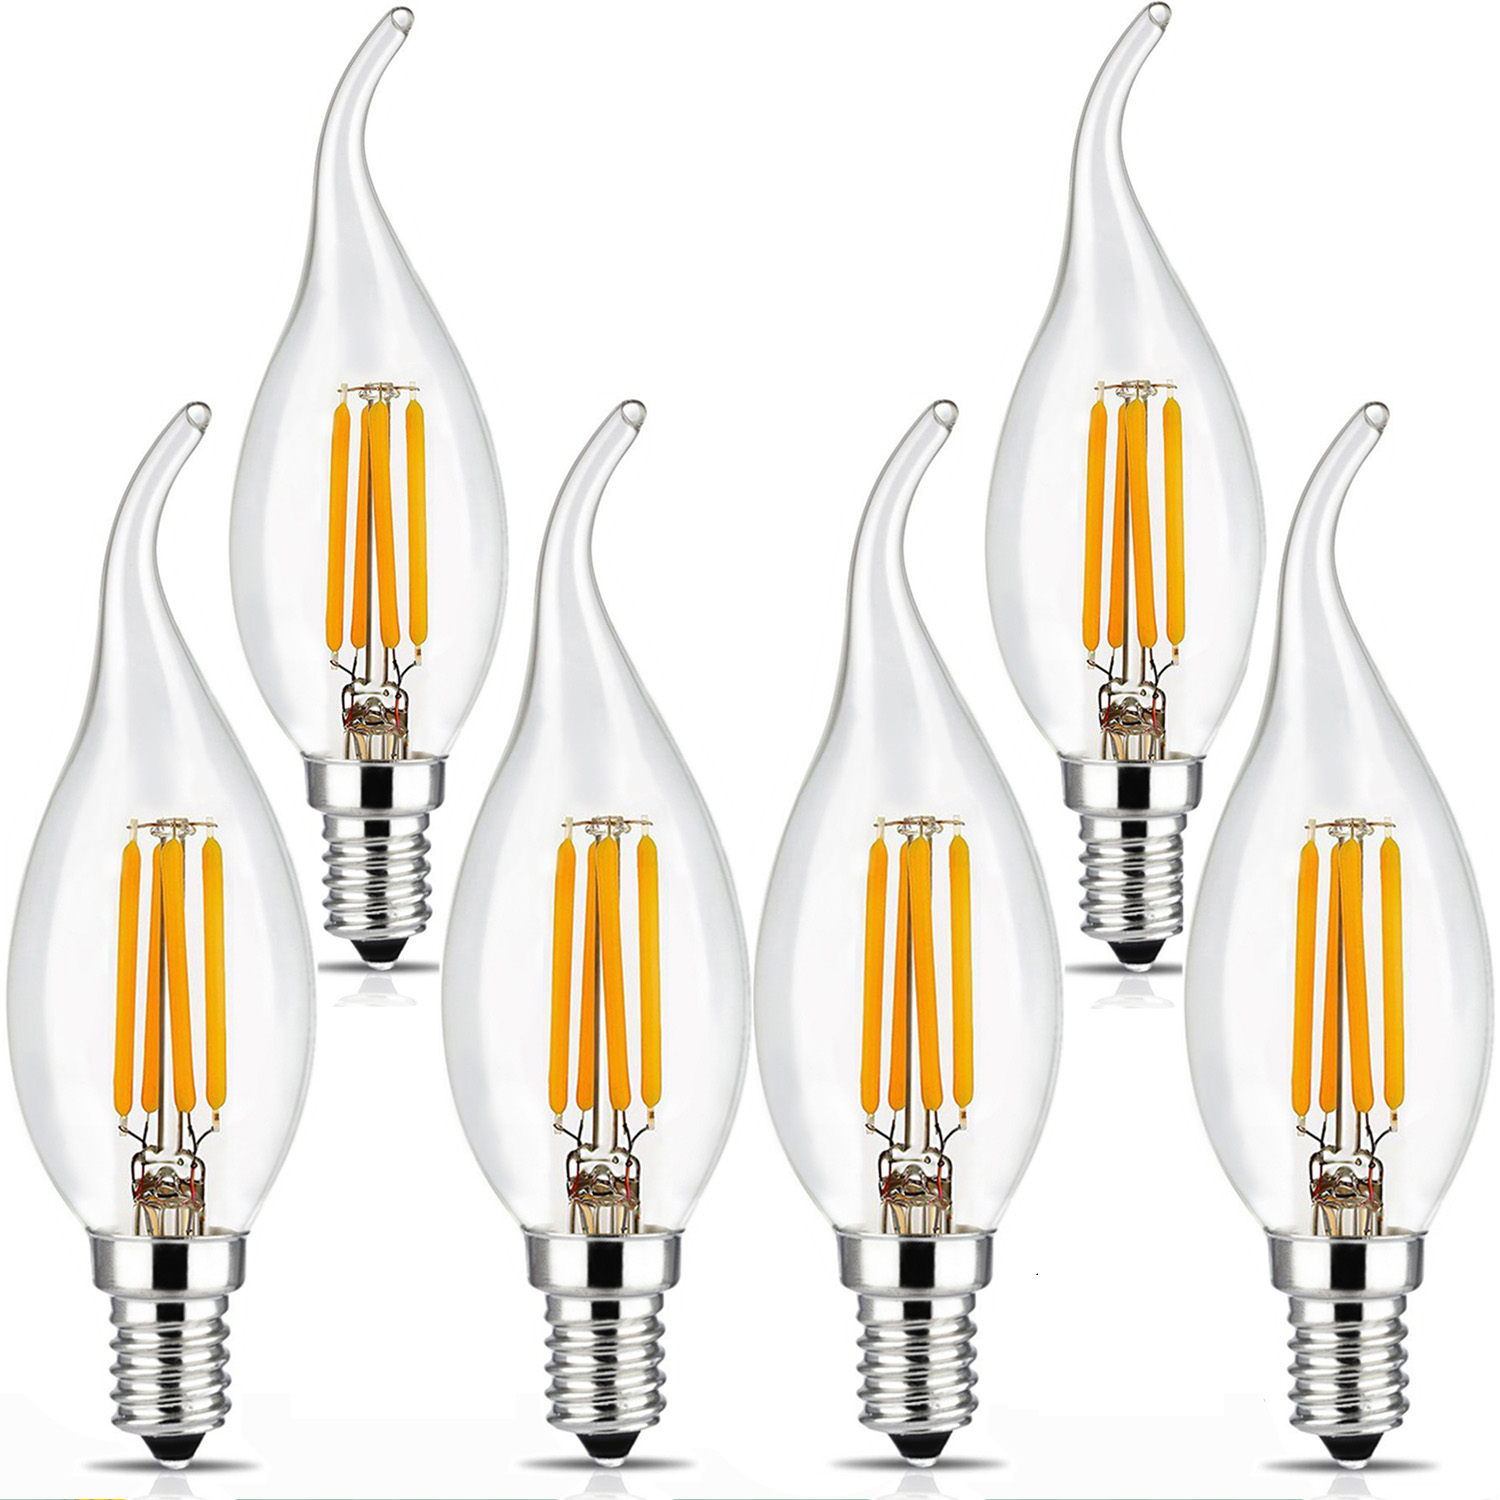 BRIMAX 6pack Dimmable 2700k 110v C35T Vintage Light <strong>Bulb</strong>